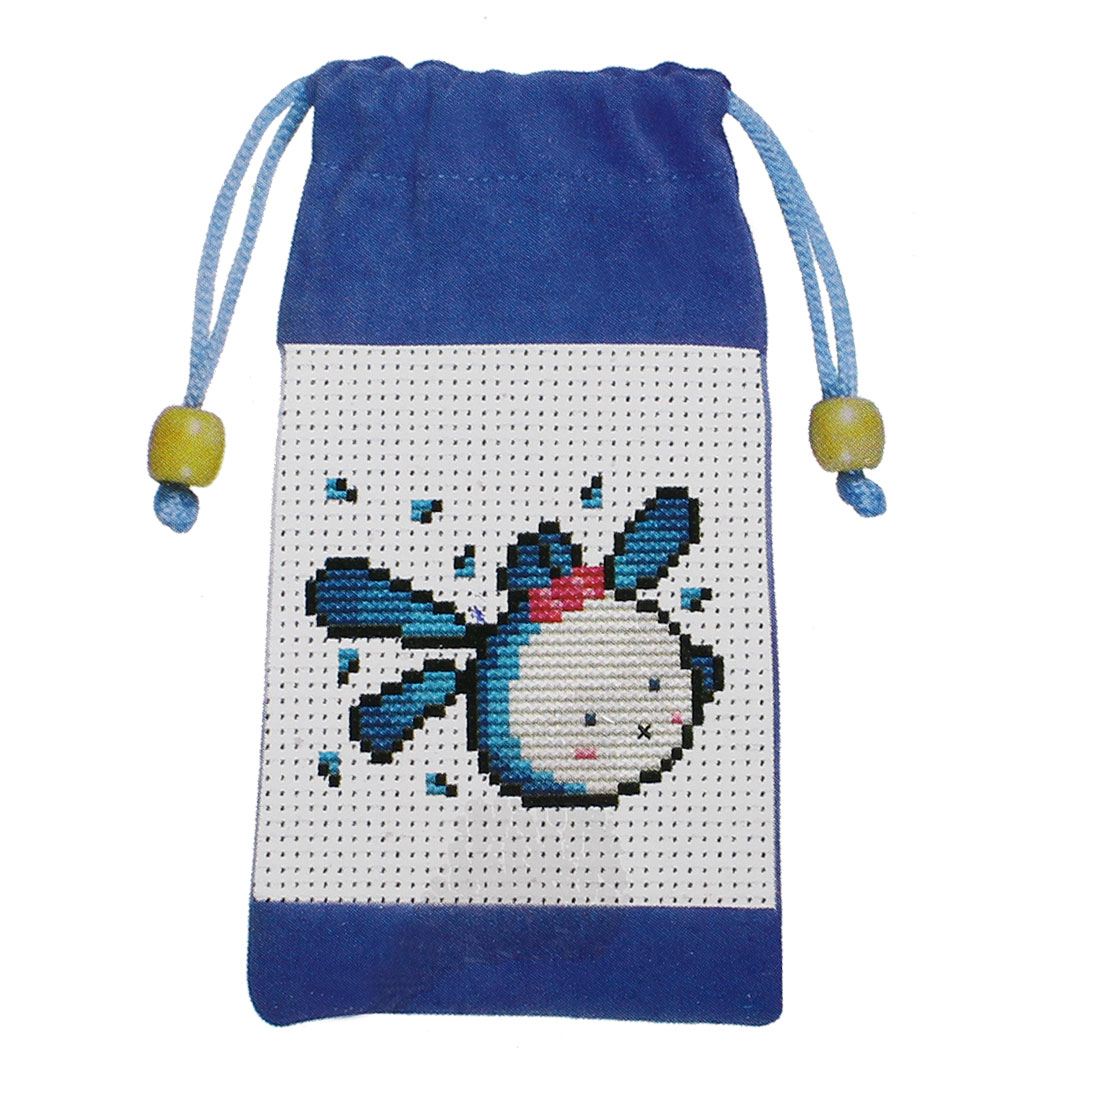 Rabbit Printed Cross Stitch Counted Kit Cell Phone Bag Holder